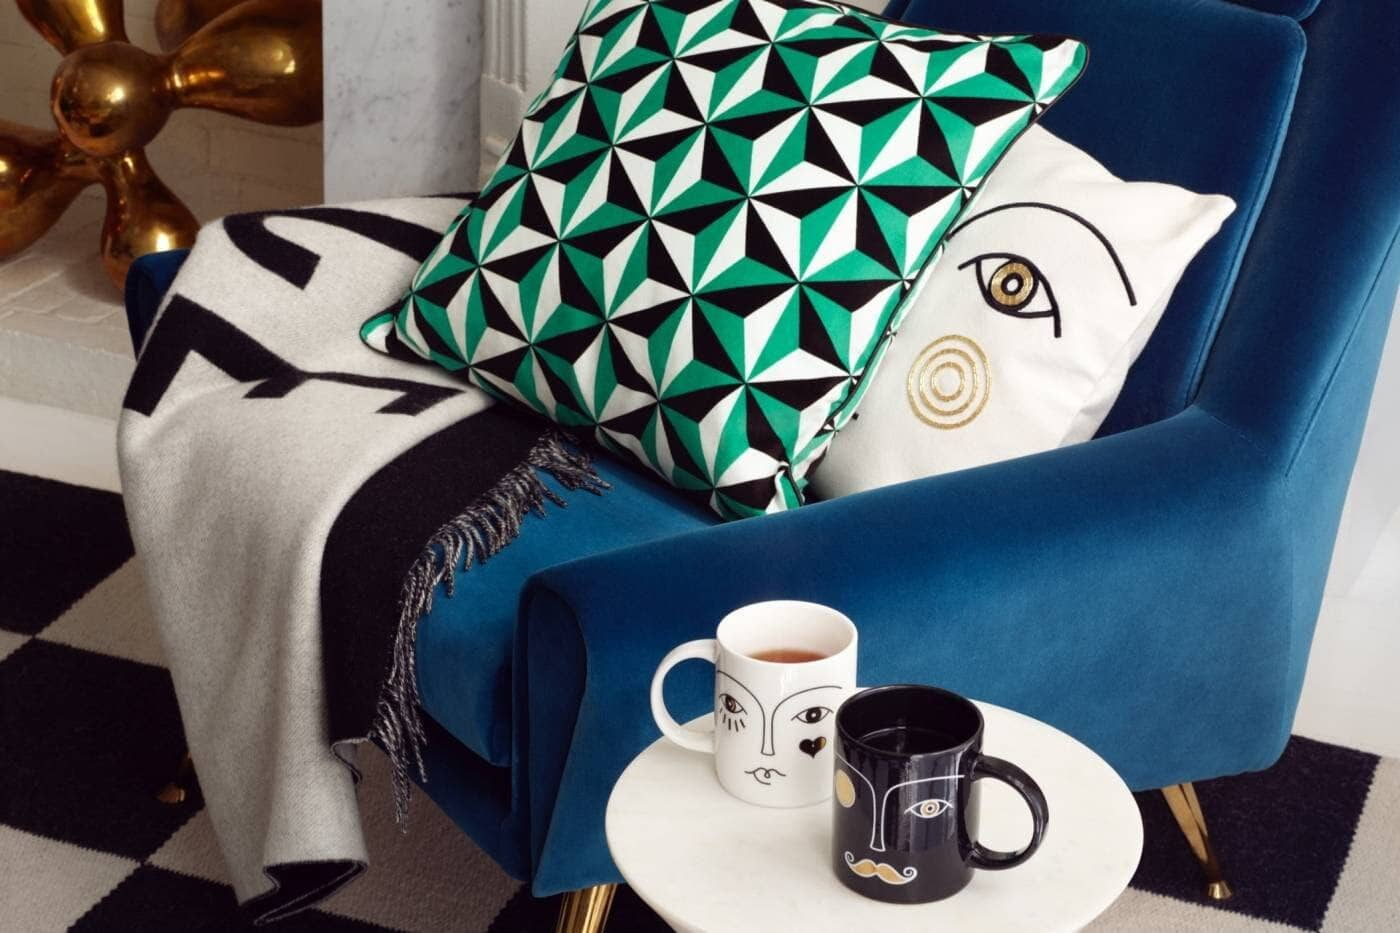 interior, interiors, interior design, interior design trends, trends, 2020, 2020 trends, rattan, faces, jewel tones, ribbed furniture, design, colours, colors, colour trends, chair, homewares